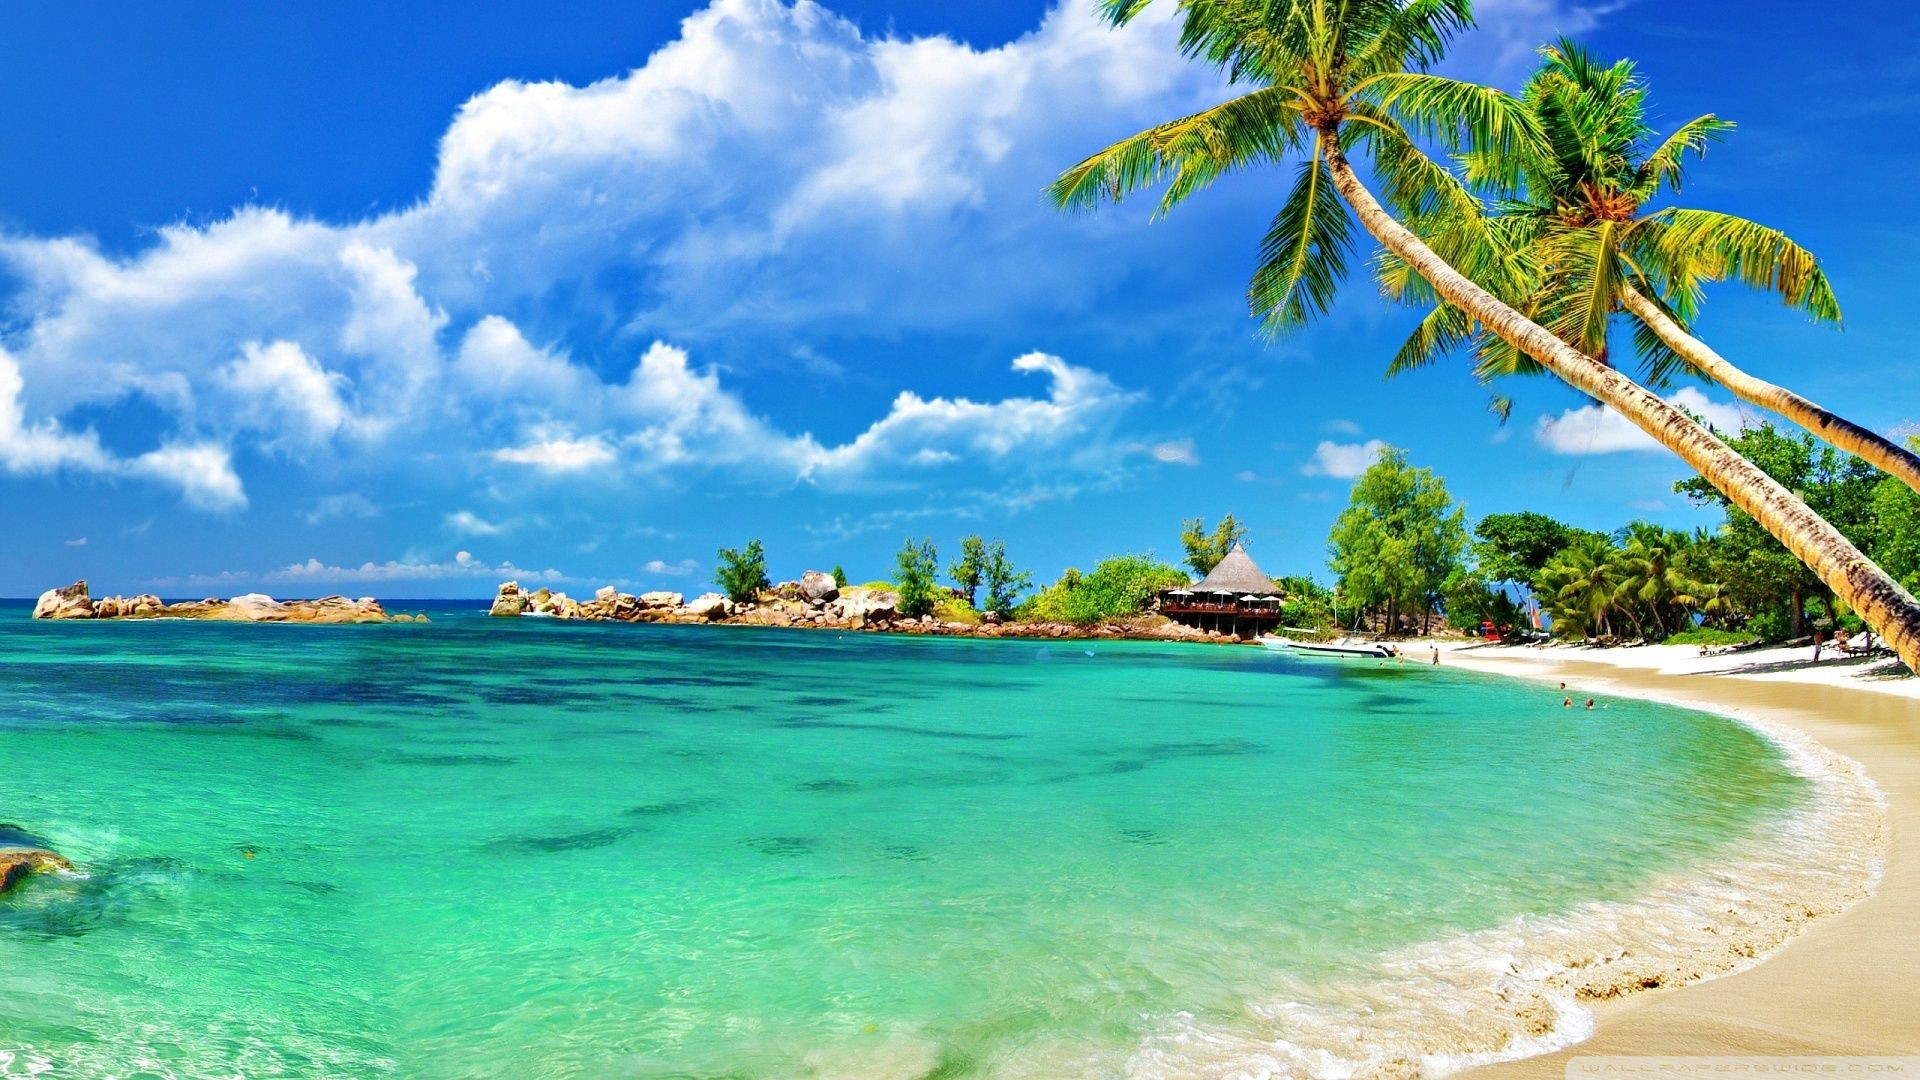 Tropical Beach Landscape Photo